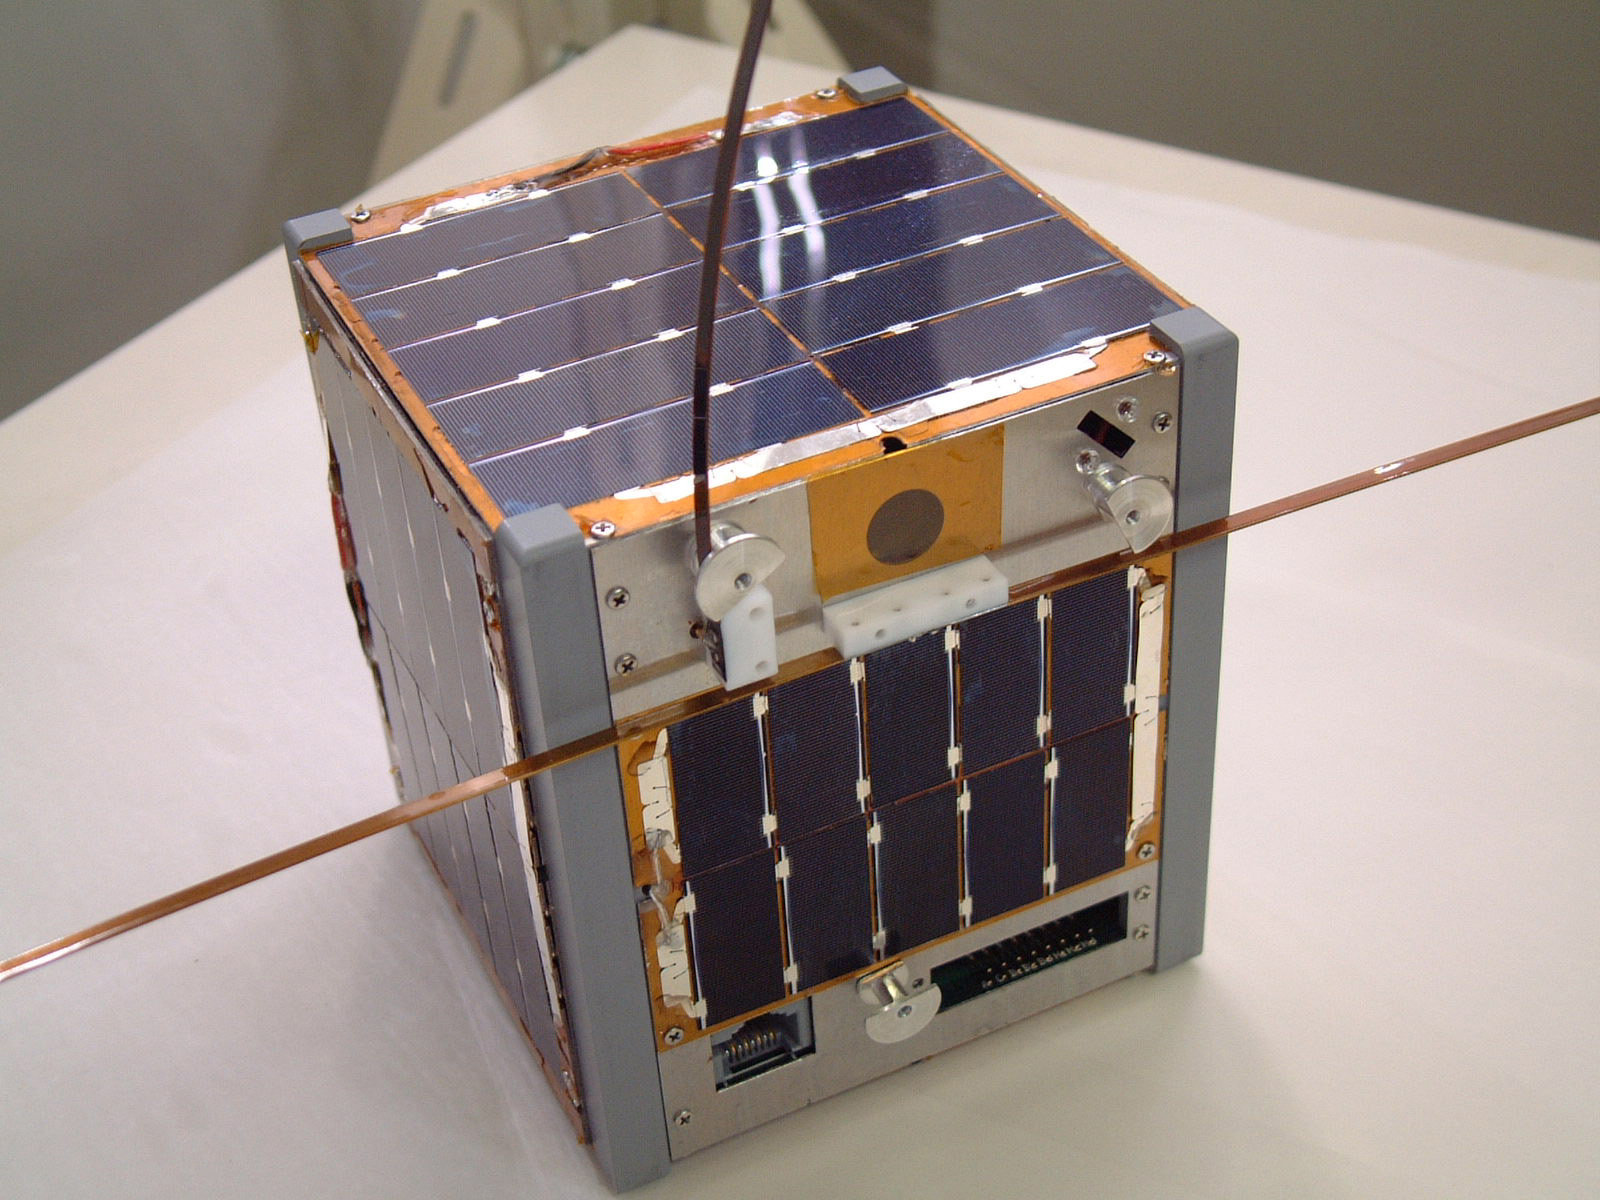 Photo of a typical 1U CubeSat.